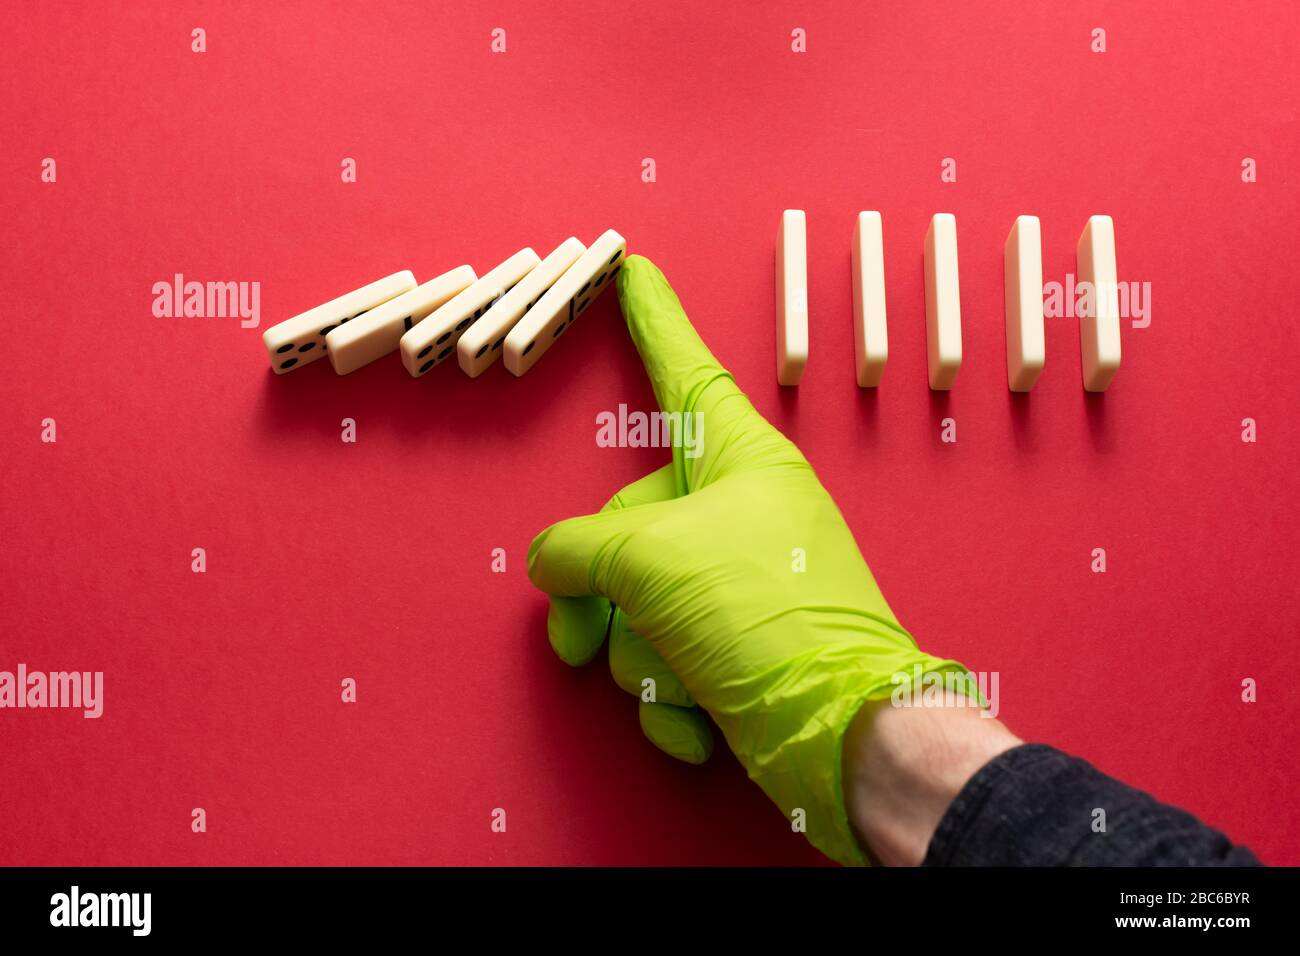 Physical distancing. Avoiding close contact is the key to slowing coronavirus Covid-19. Social distancing concept. Domino effect. Stock Photo